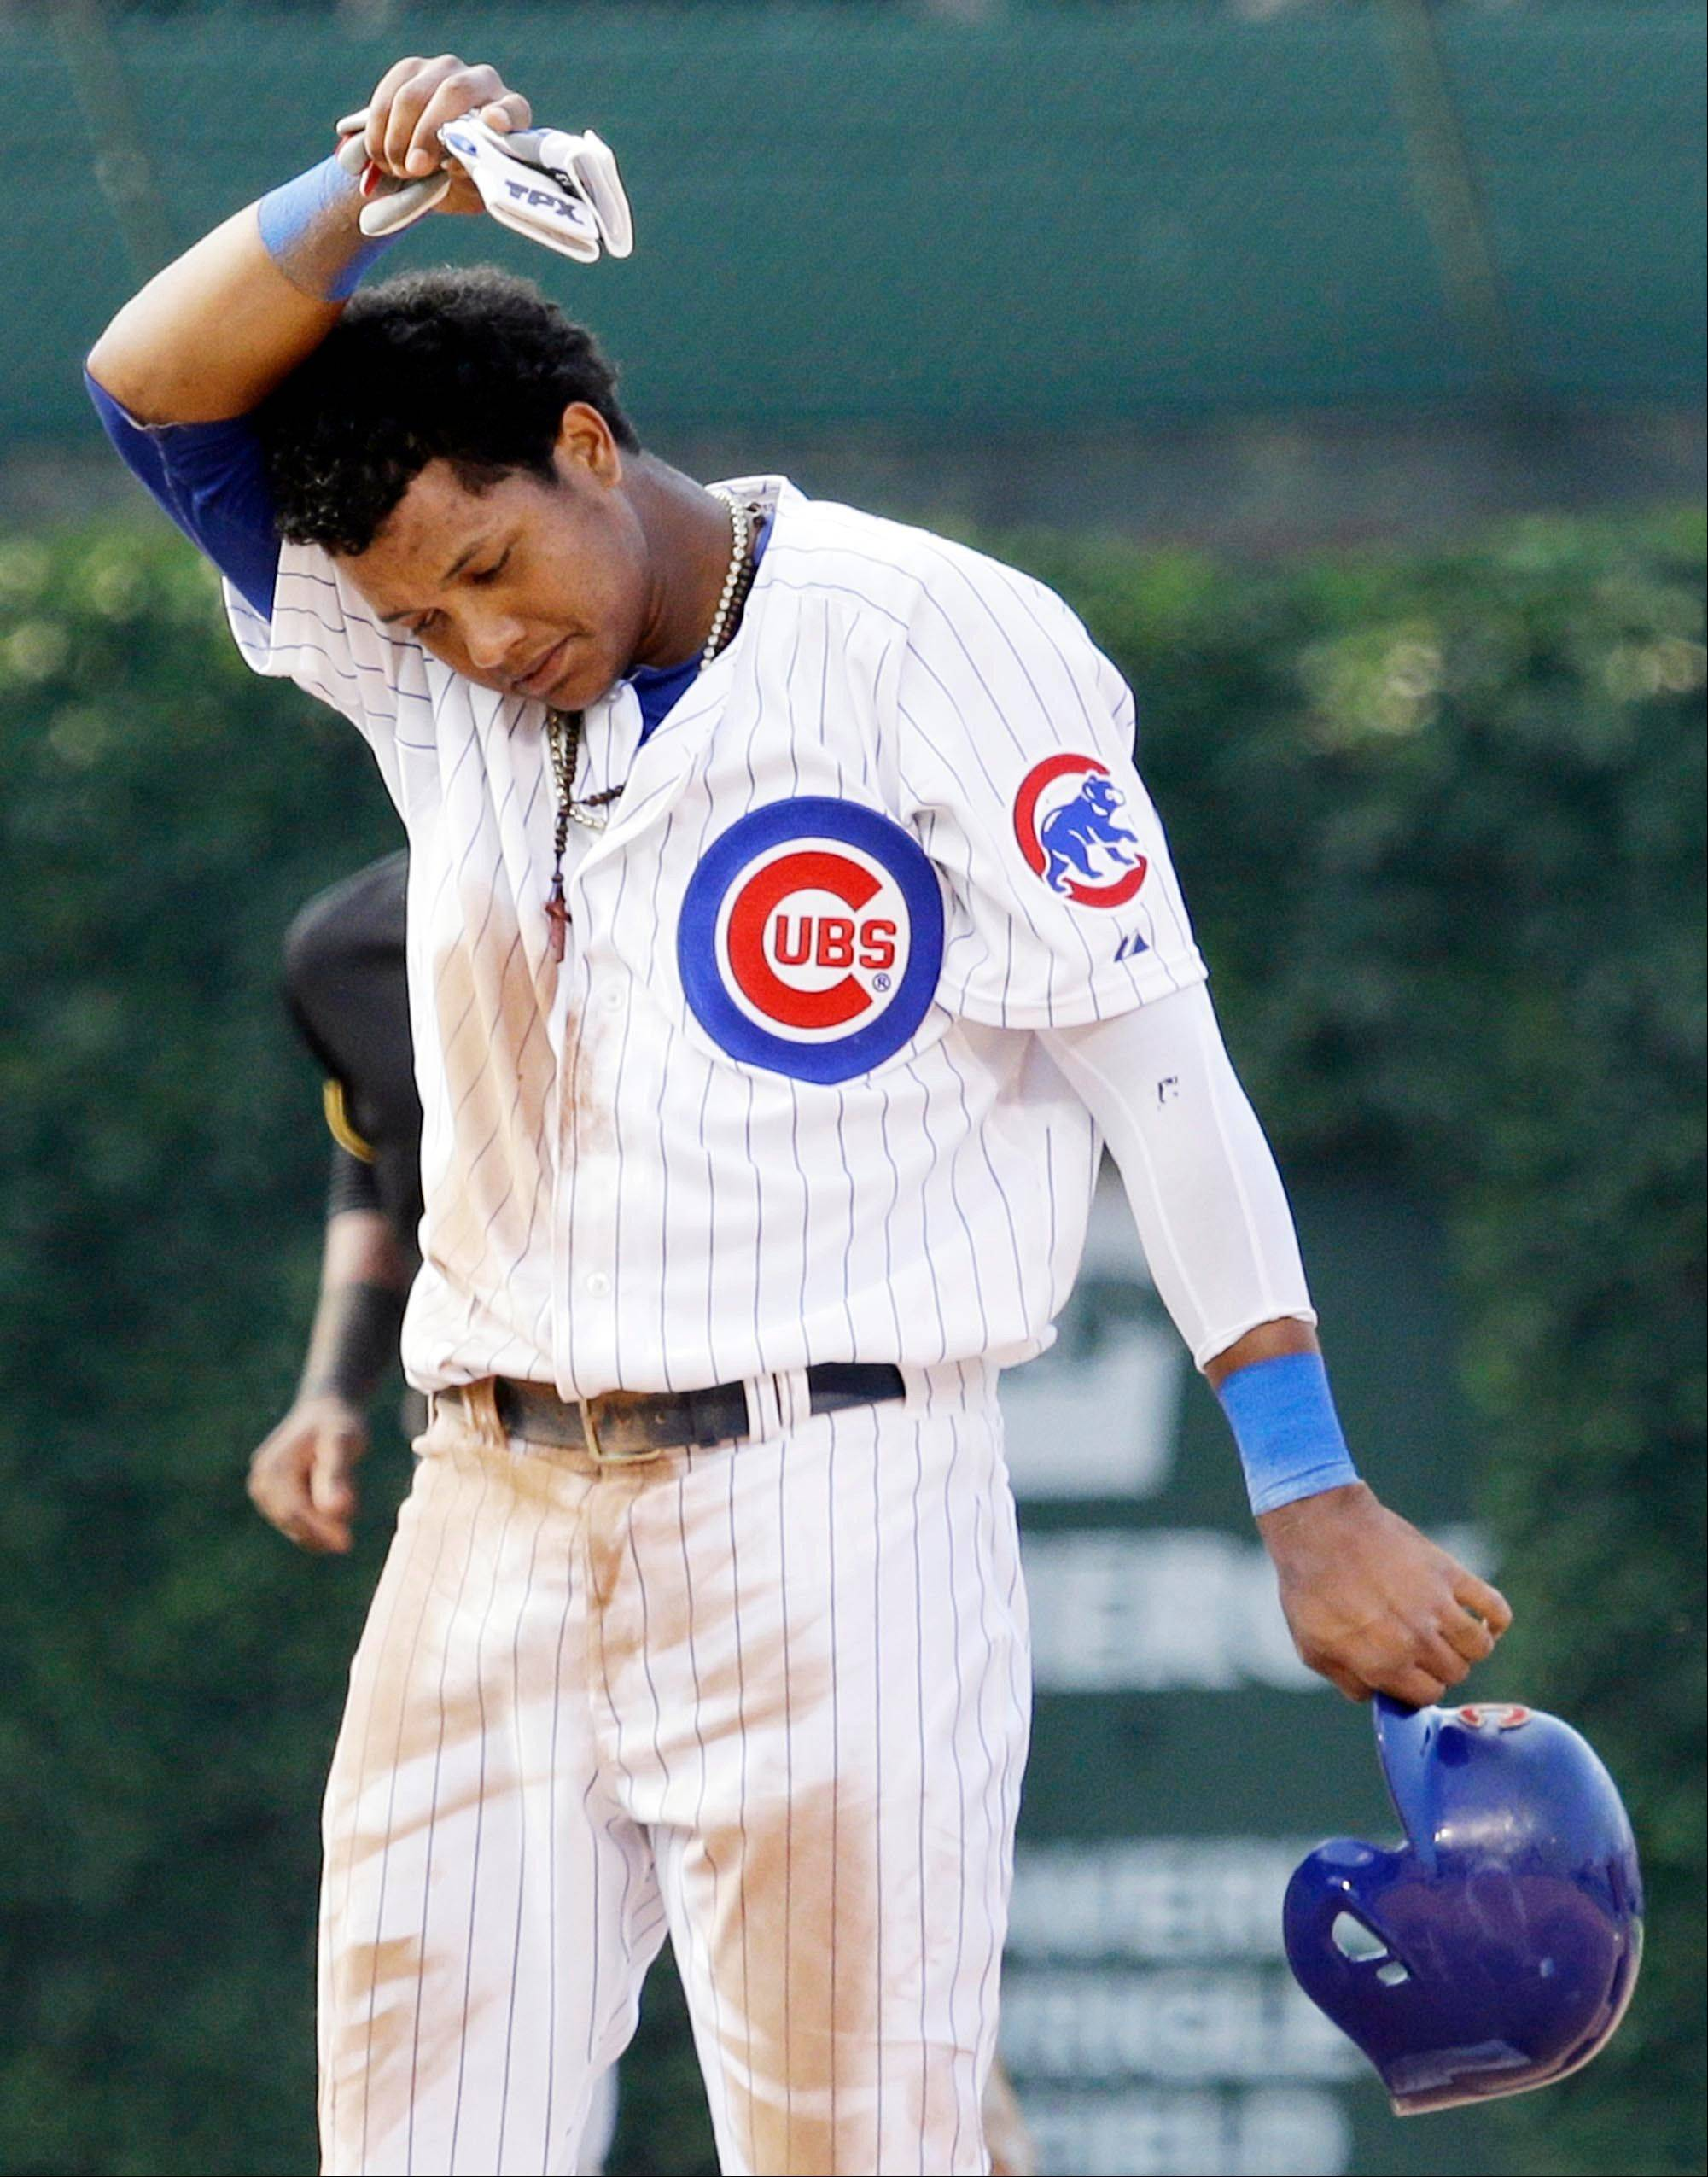 Liriano goes the distance in Pirates' win over Cubs